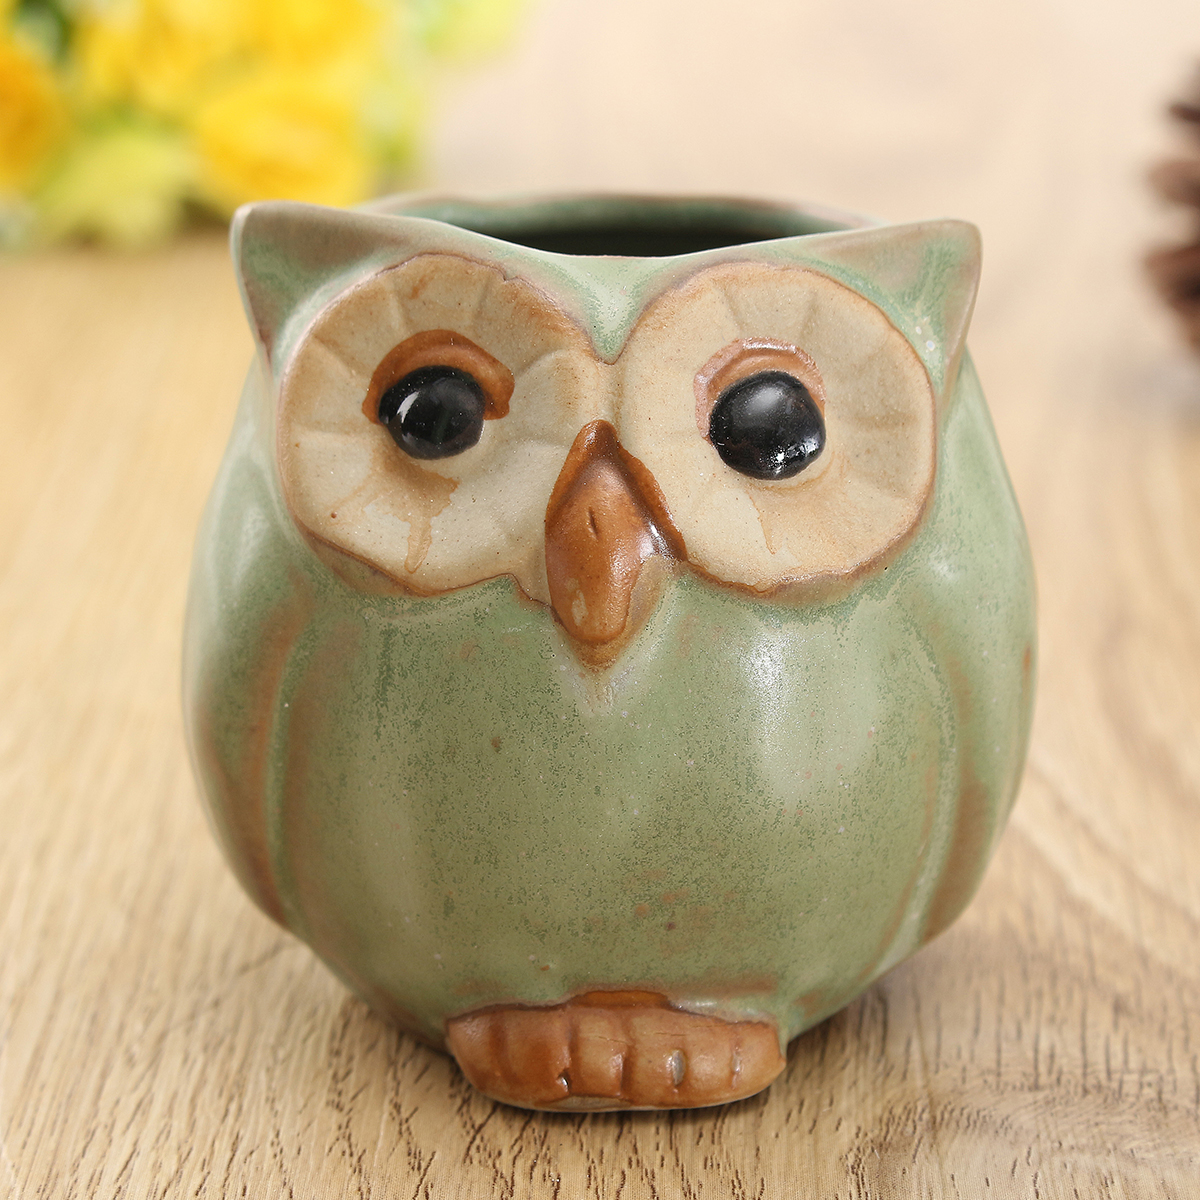 Garden Decorations Ceramic Owl Succulent Plants Flower Pot Mini Plant Planters